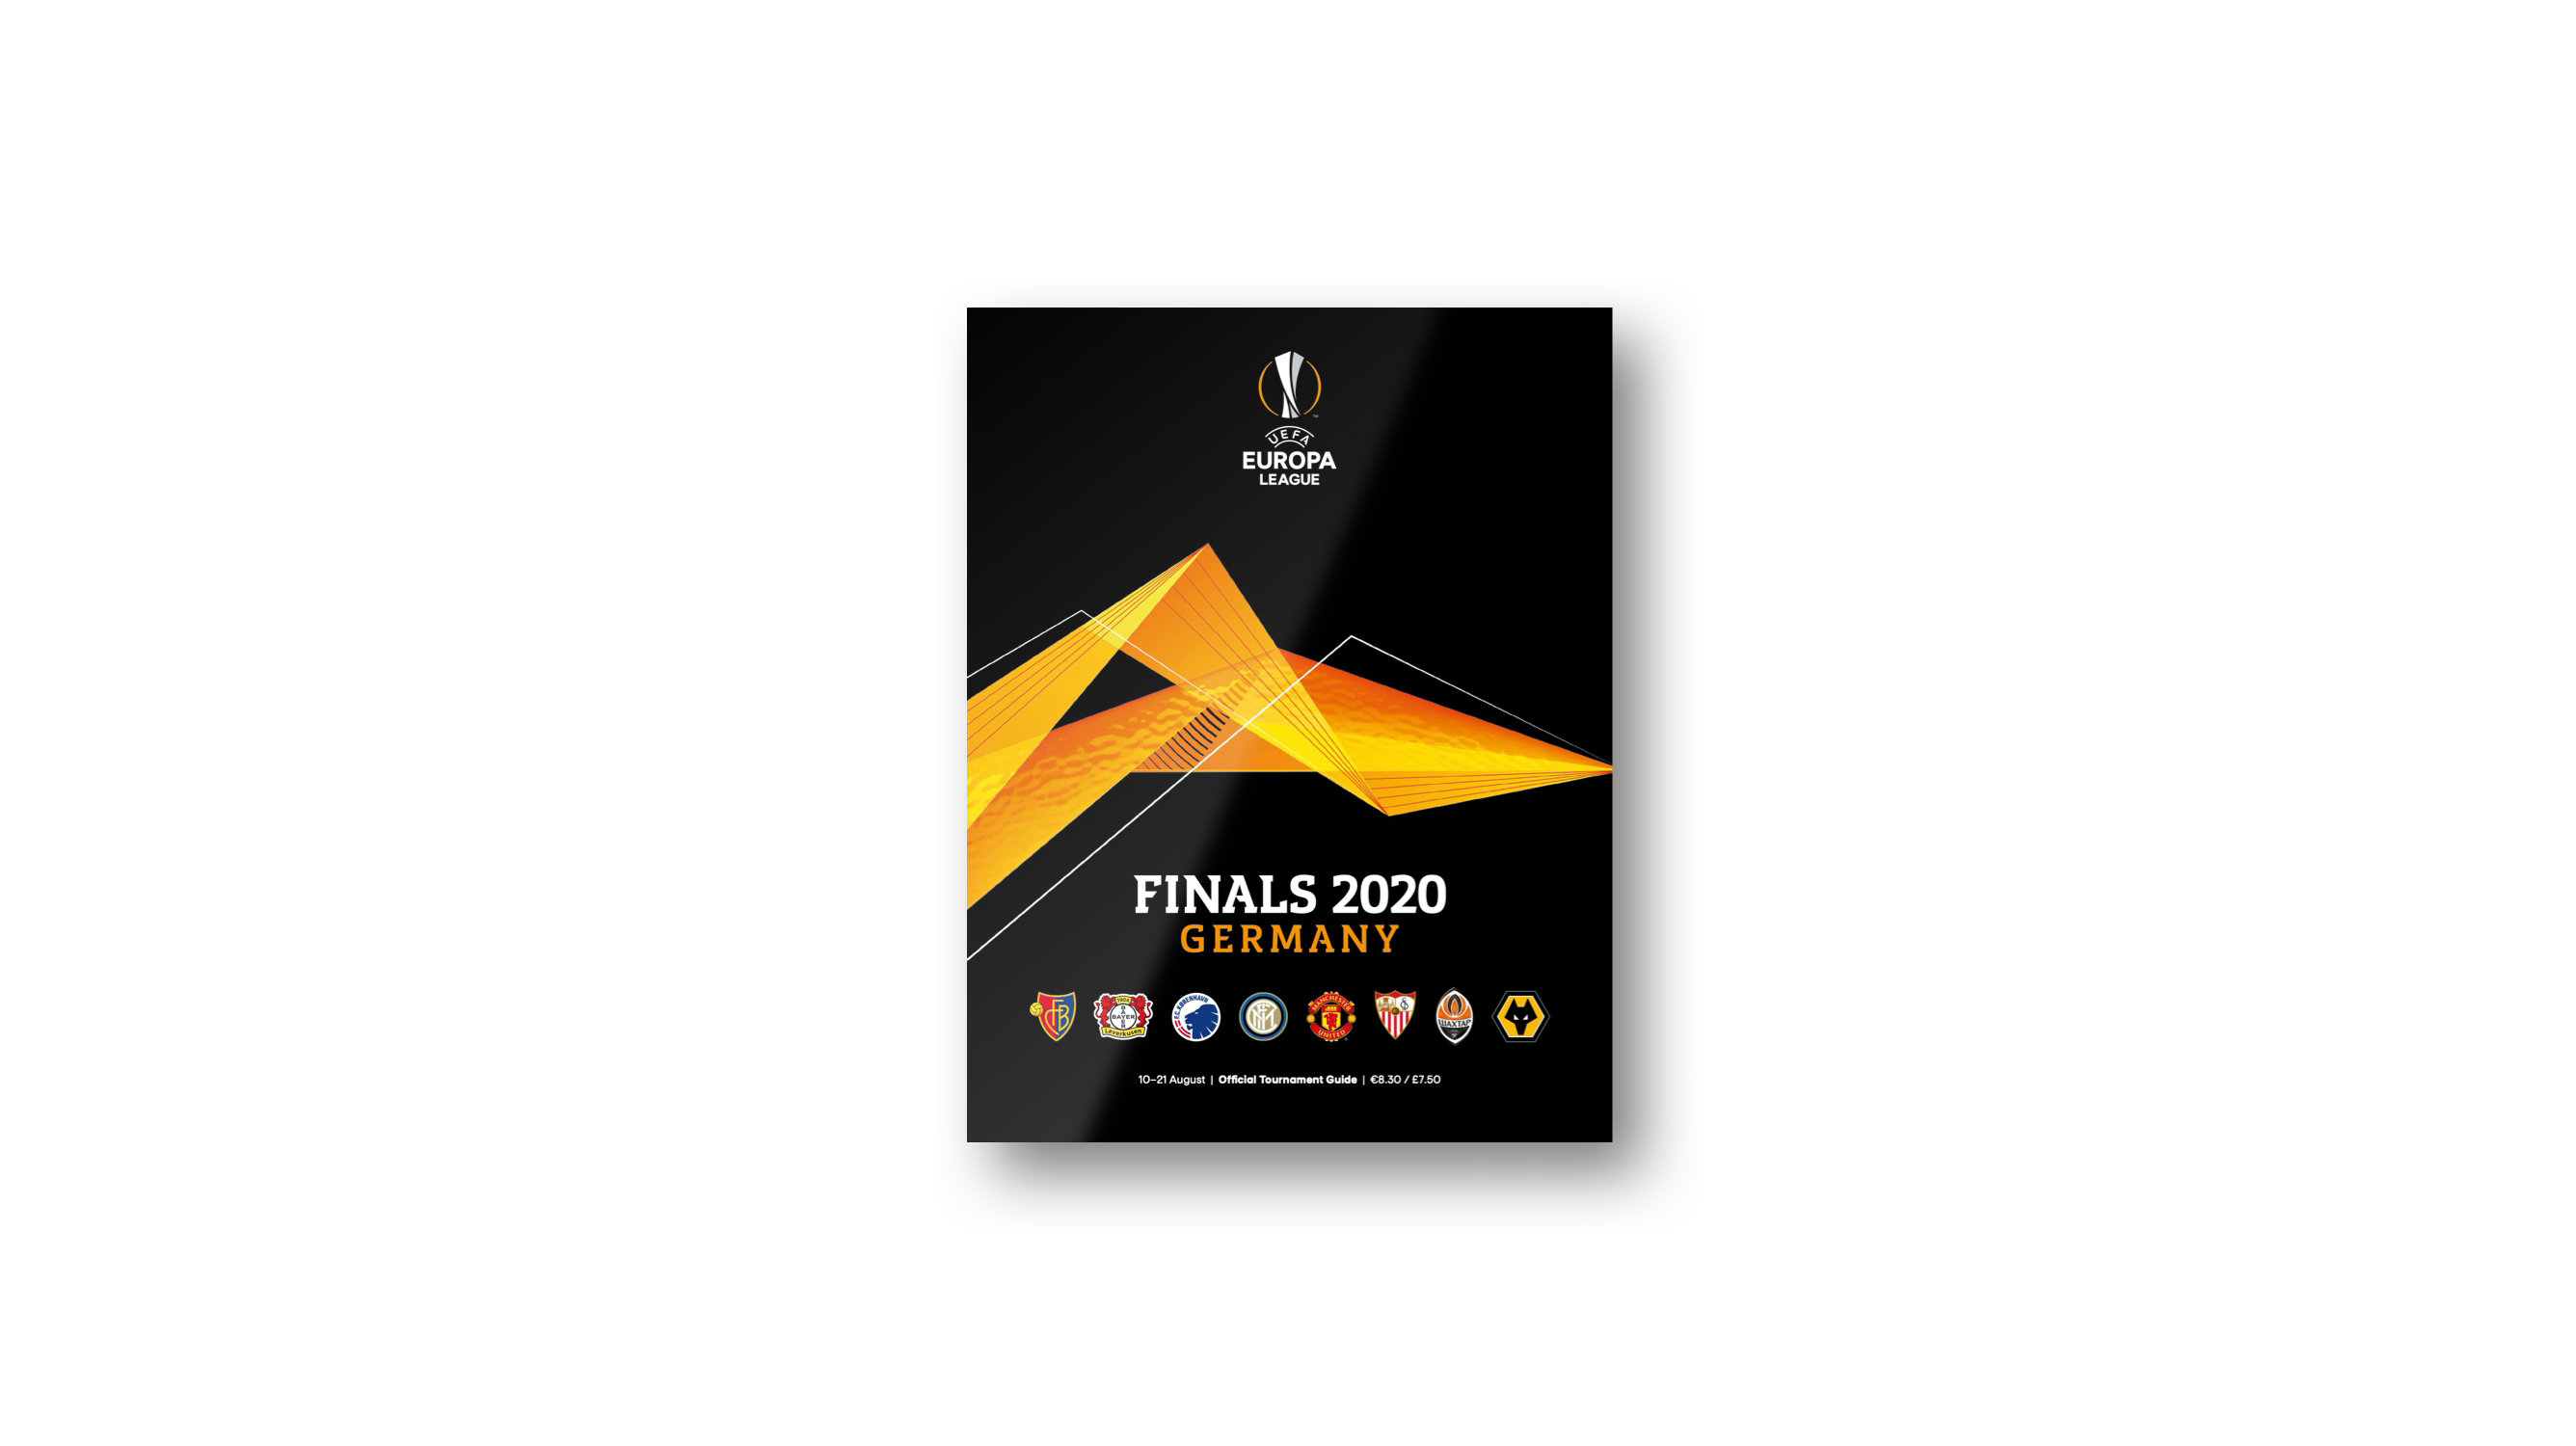 uefa europa league tournament guide 2020 european nights uefa europa league tournament guide